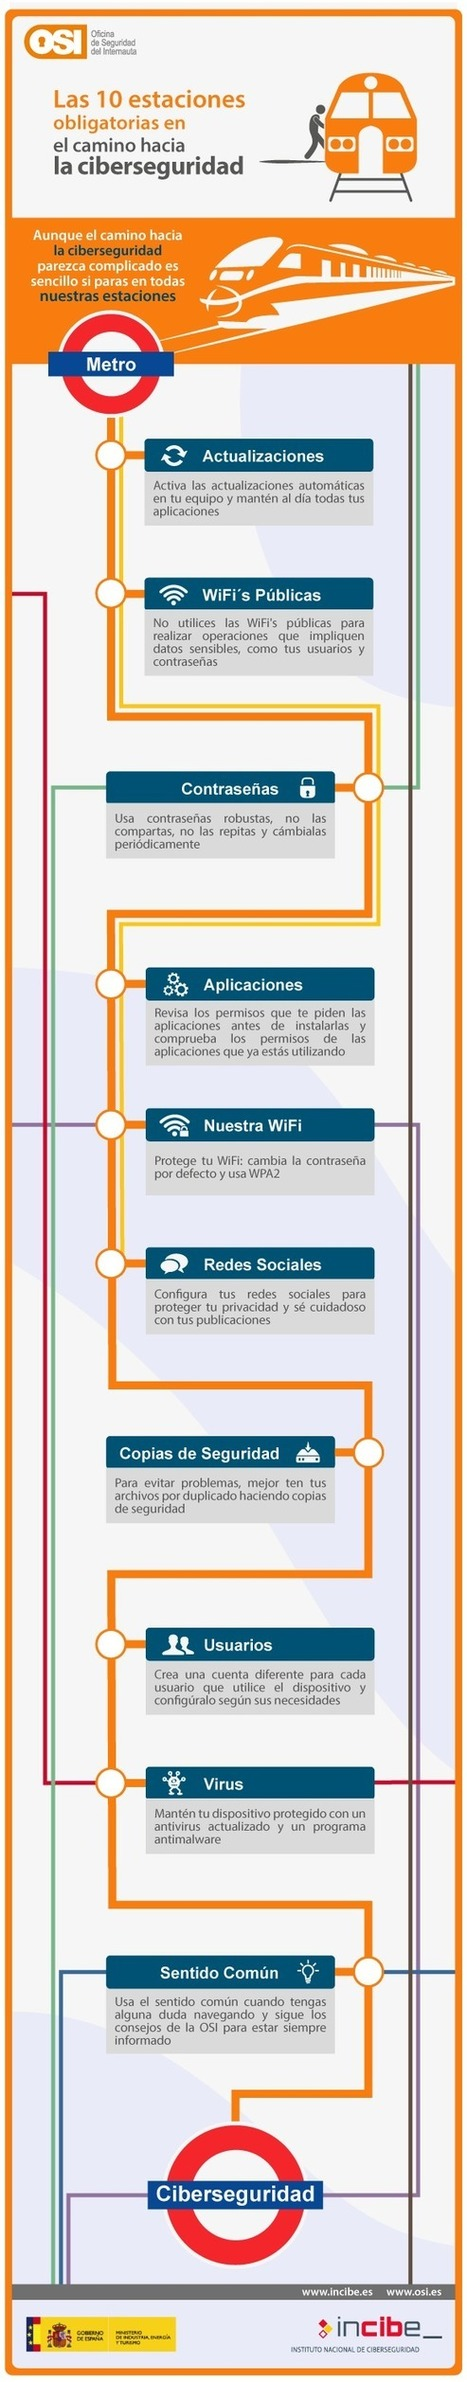 10 estaciones obligatorias en el camino hacia la ciberseguridad | A New Society, a new education! | Scoop.it